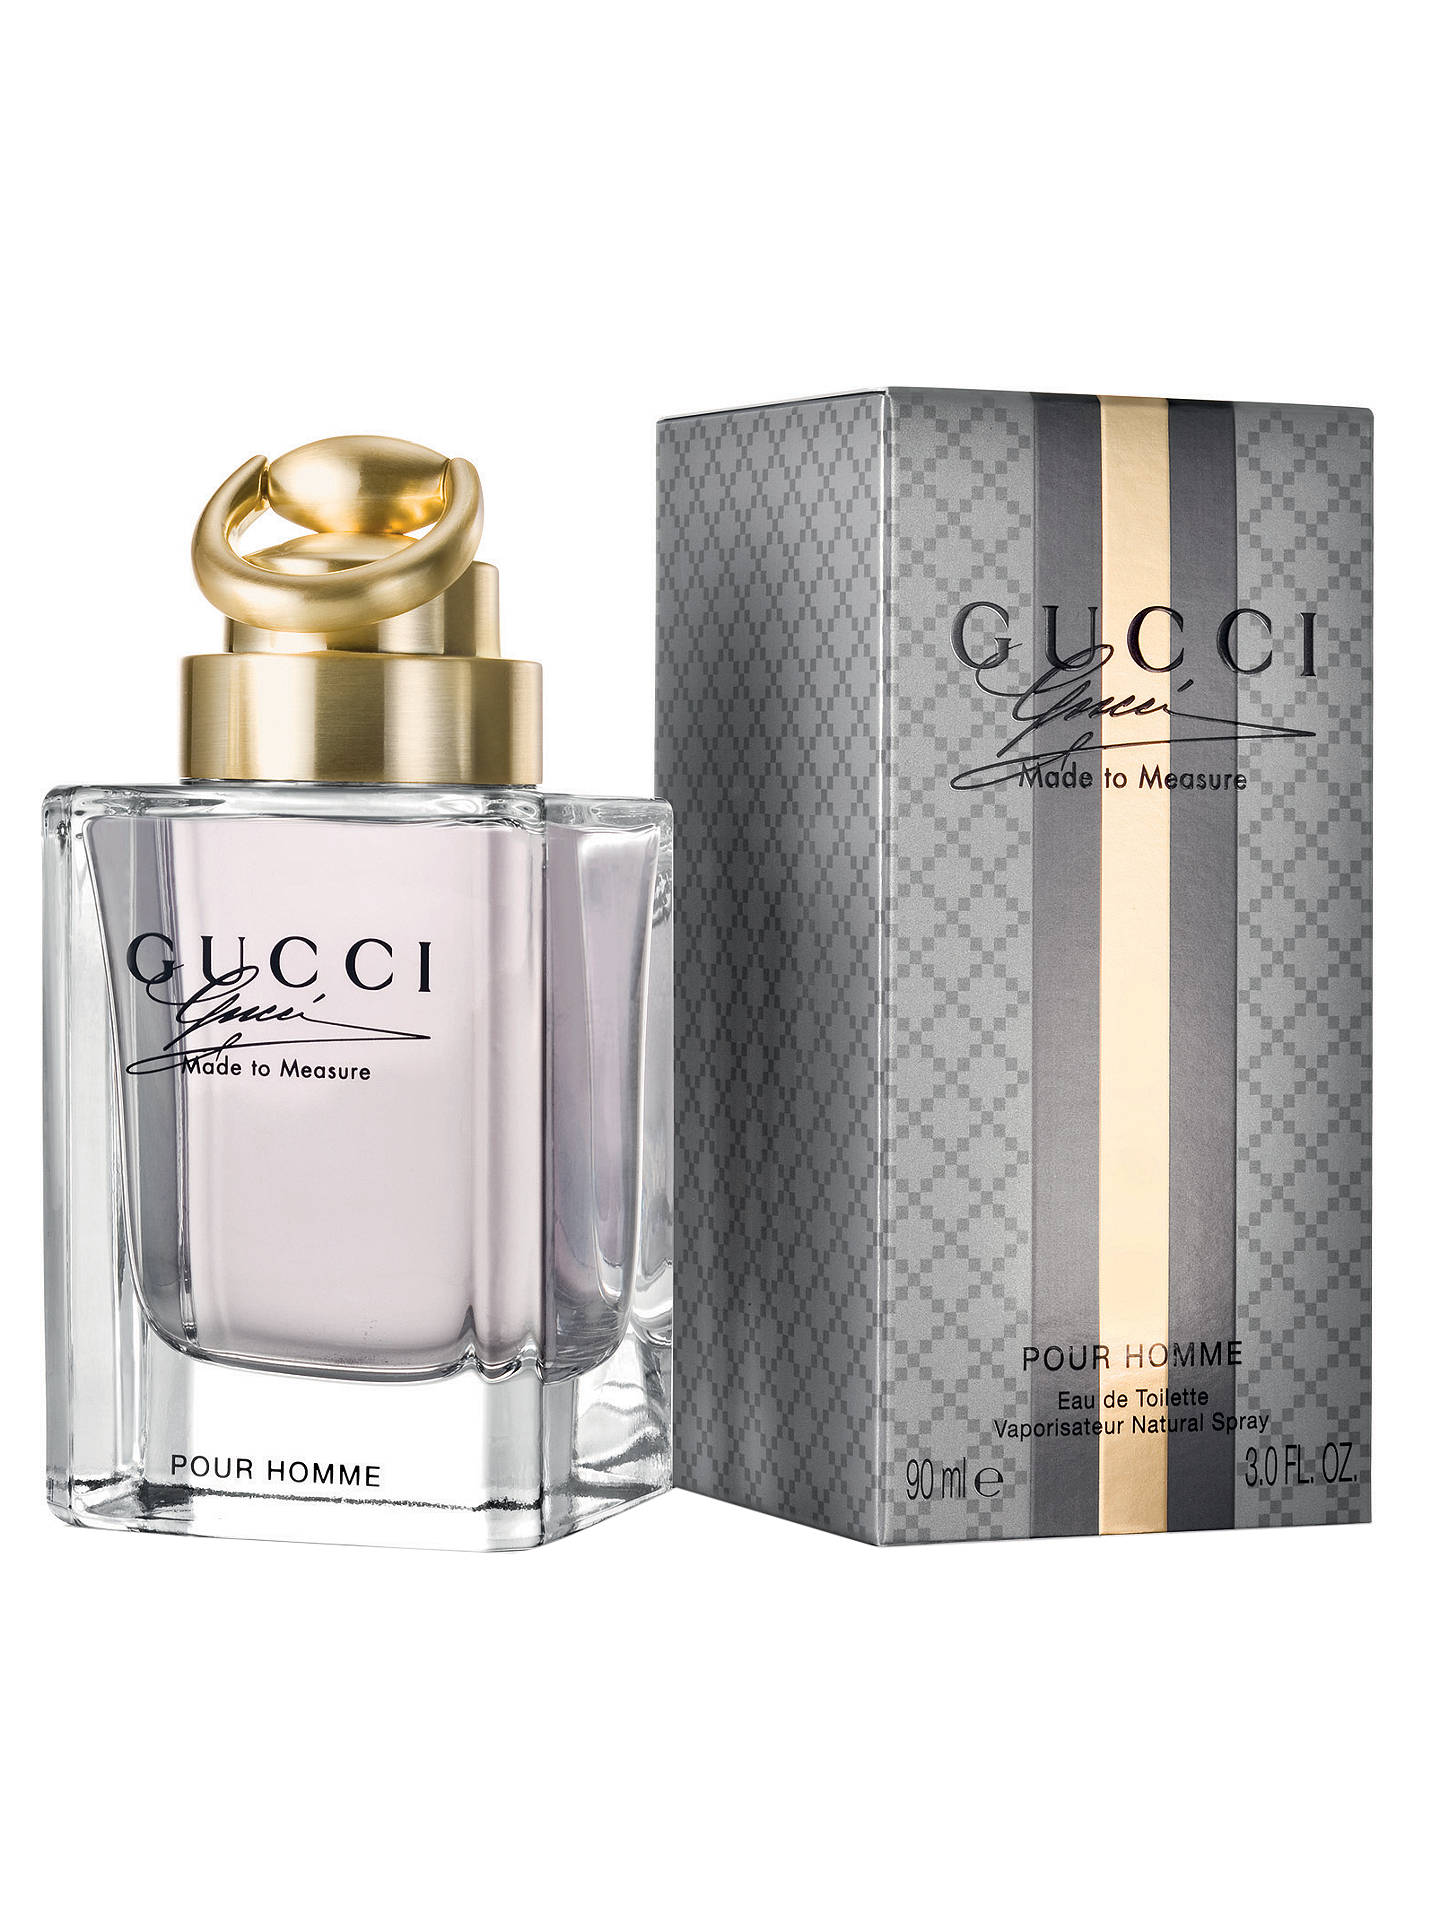 Buy Gucci Made to Measure Eau de Toilette for Him, 30ml Online at johnlewis.com